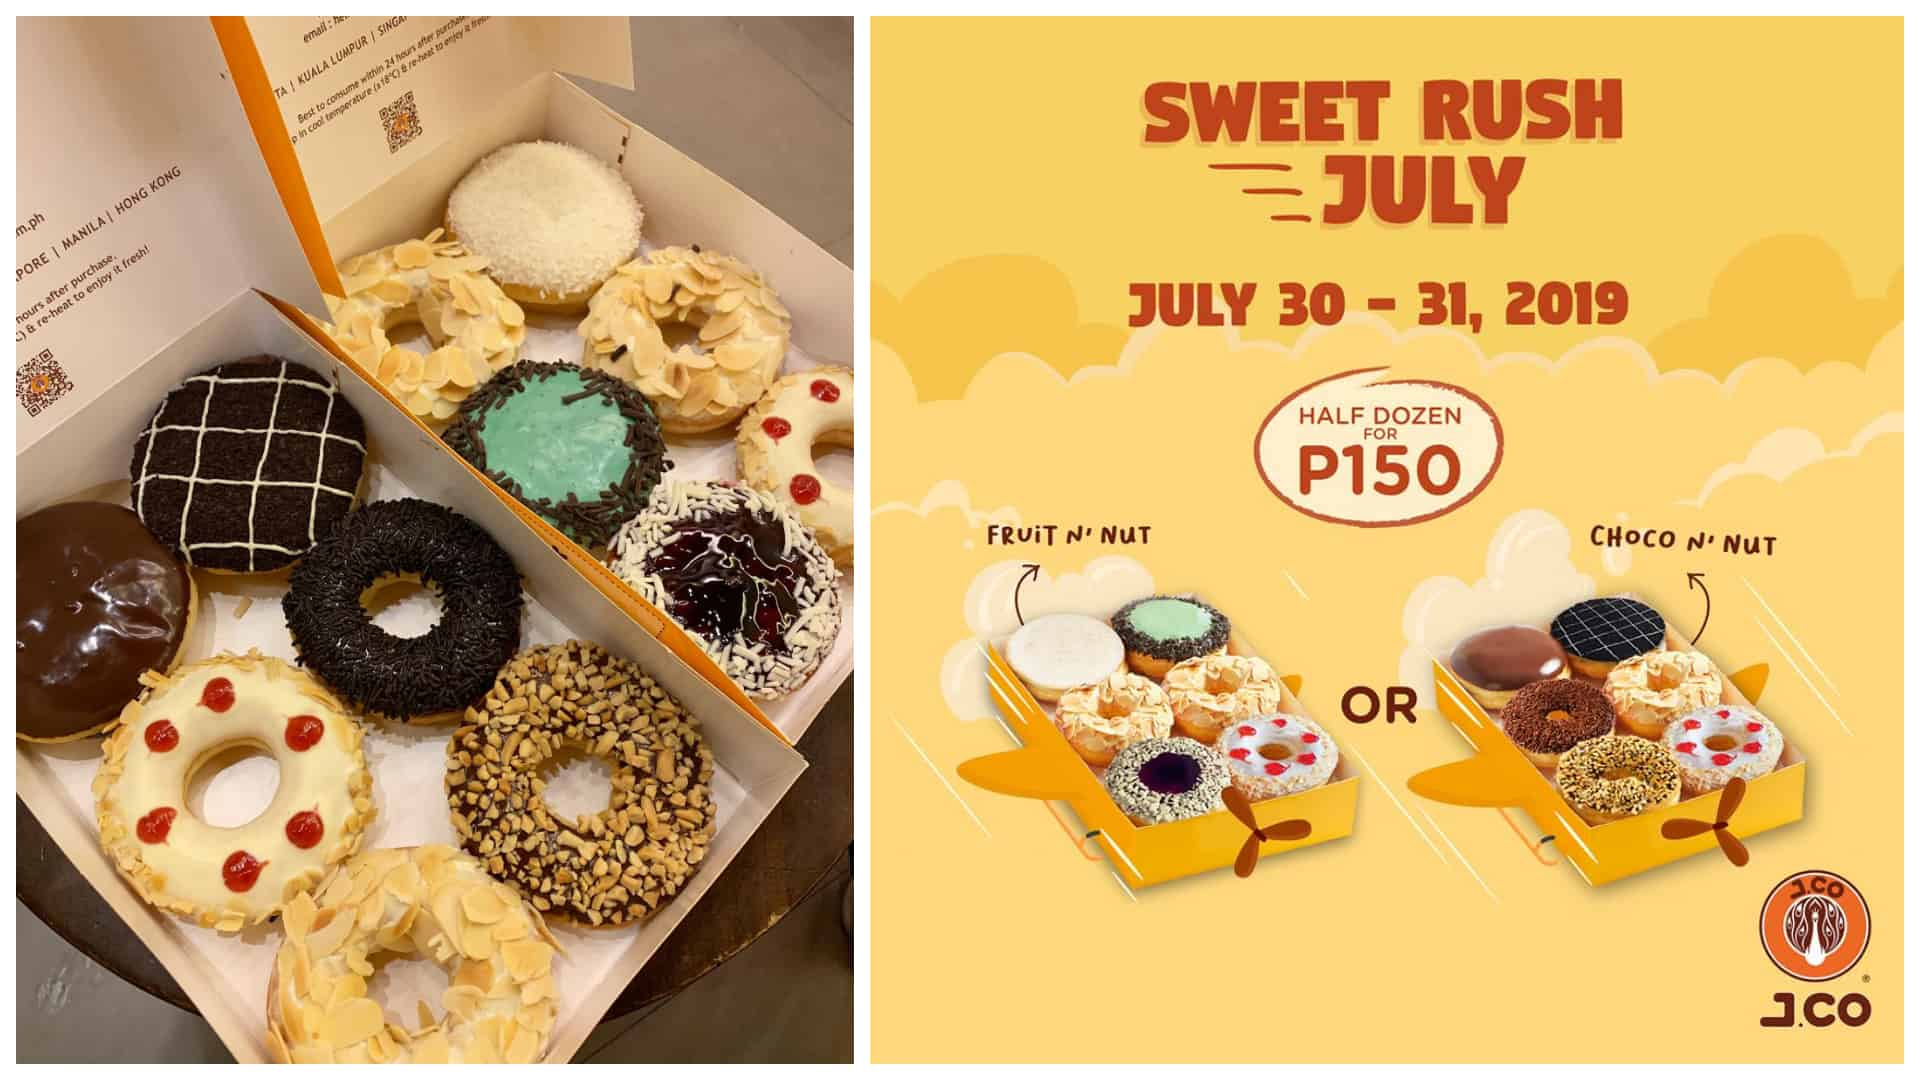 Payday Treat: JCO Donuts offers 1/2 Dozen for ₱150 (from ...